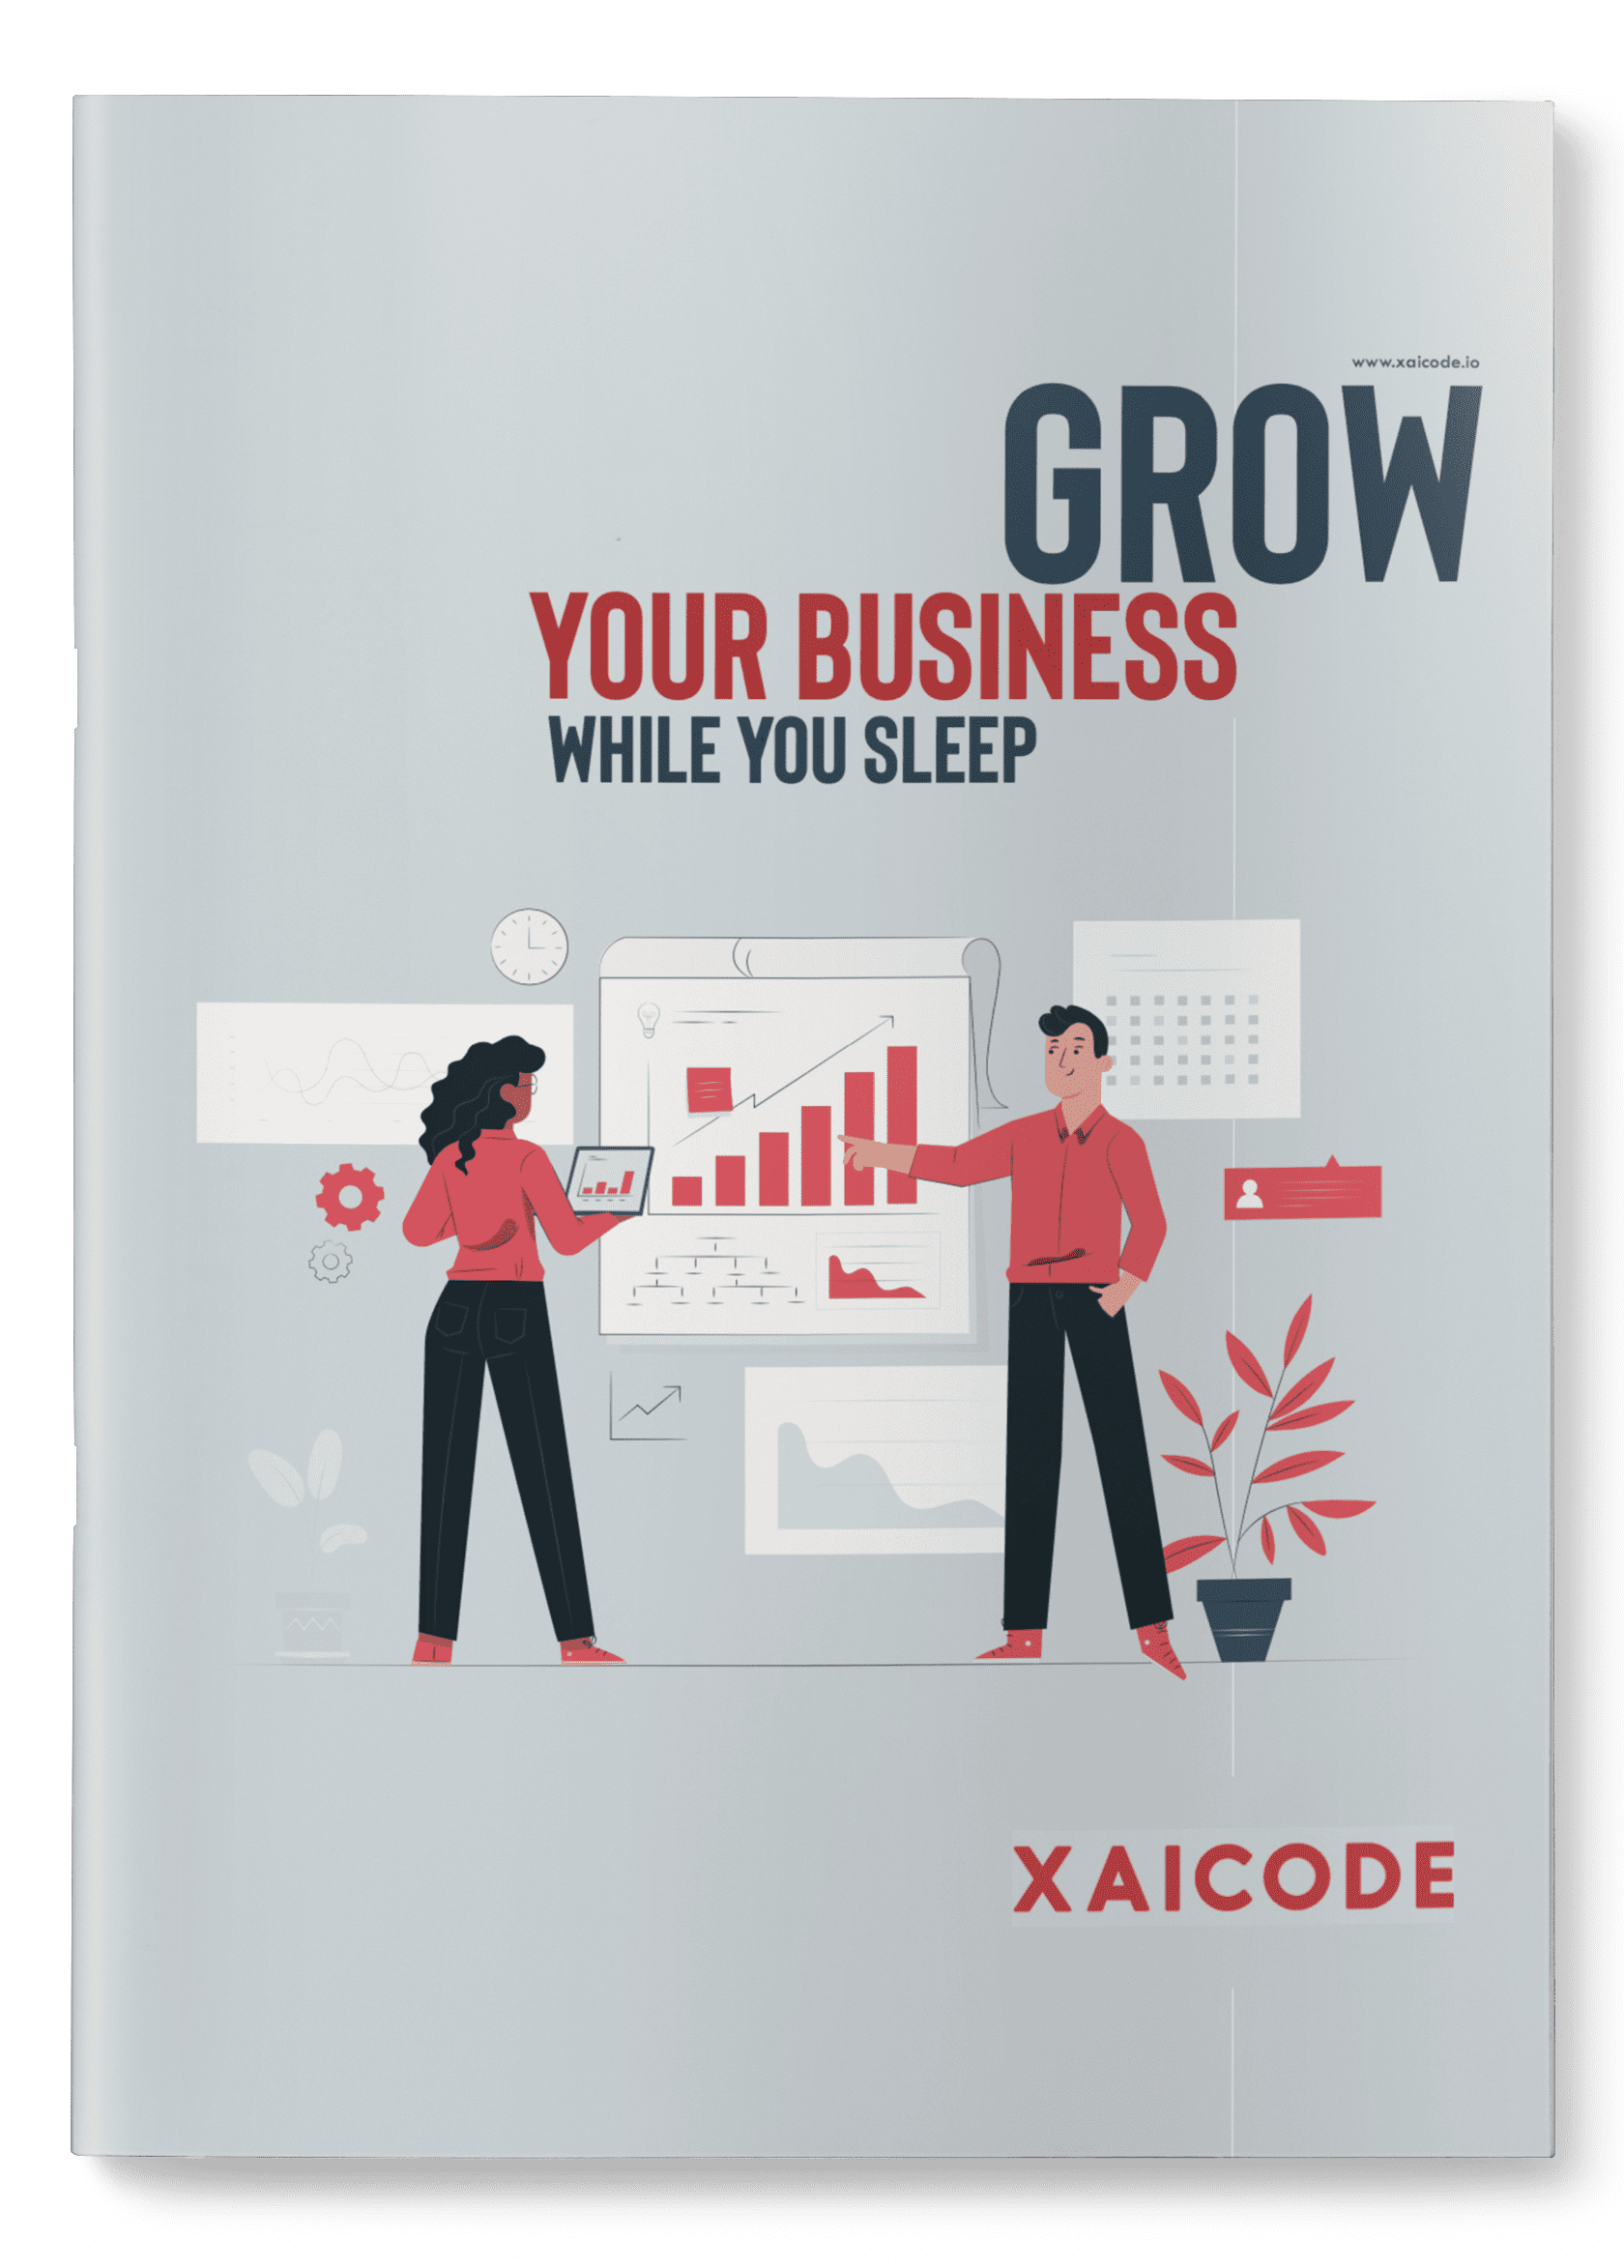 Cover image for Xaicode's Grow Your Business While You Sleep ebook.